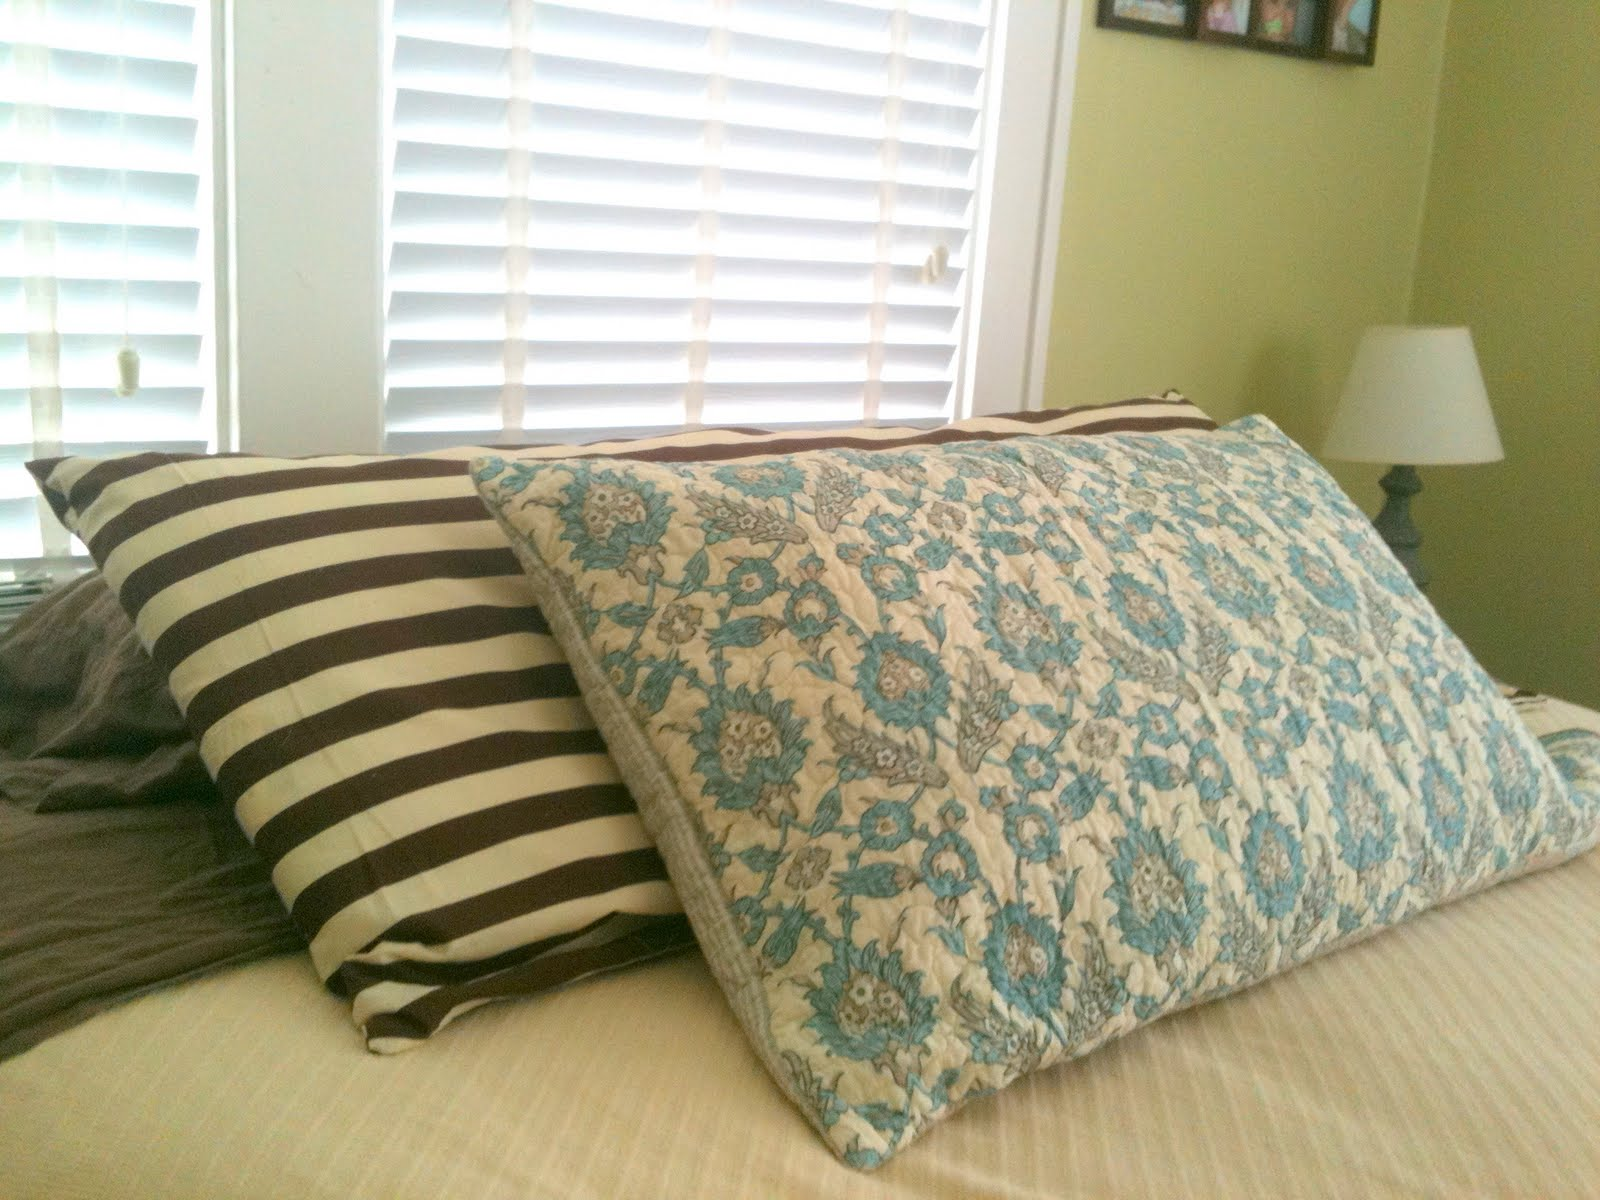 Body Pillow Cover Sewing Pattern: Tangible Artiste  Body Pillow Cover Tutorial,